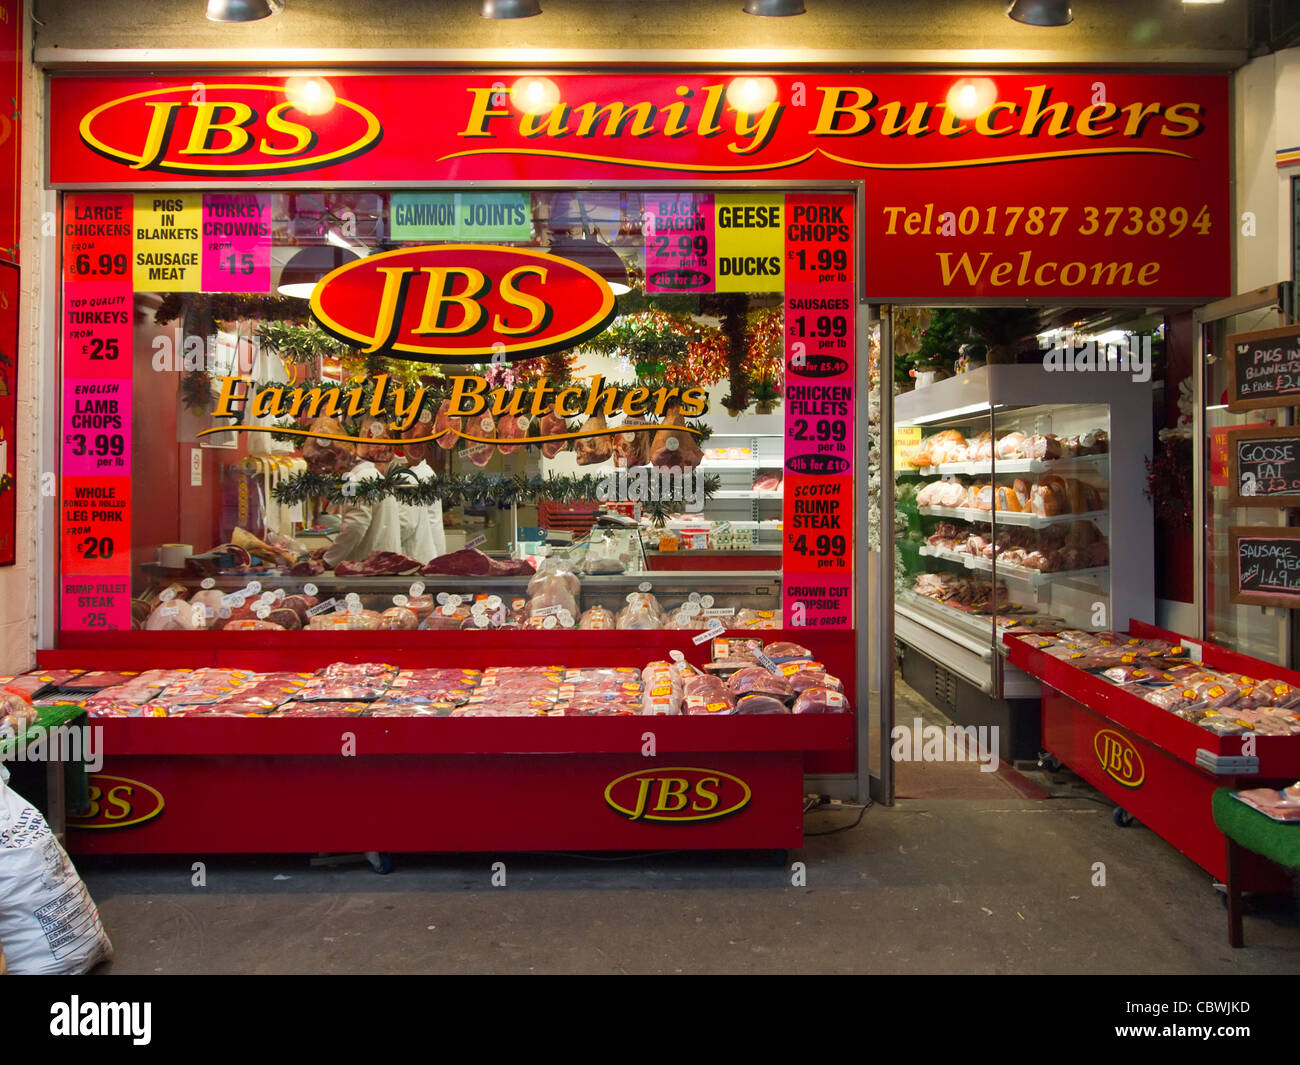 A traditional family-run butcher's shop, with its meat displays, in Sudbury, Suffolk, England. - Stock Image